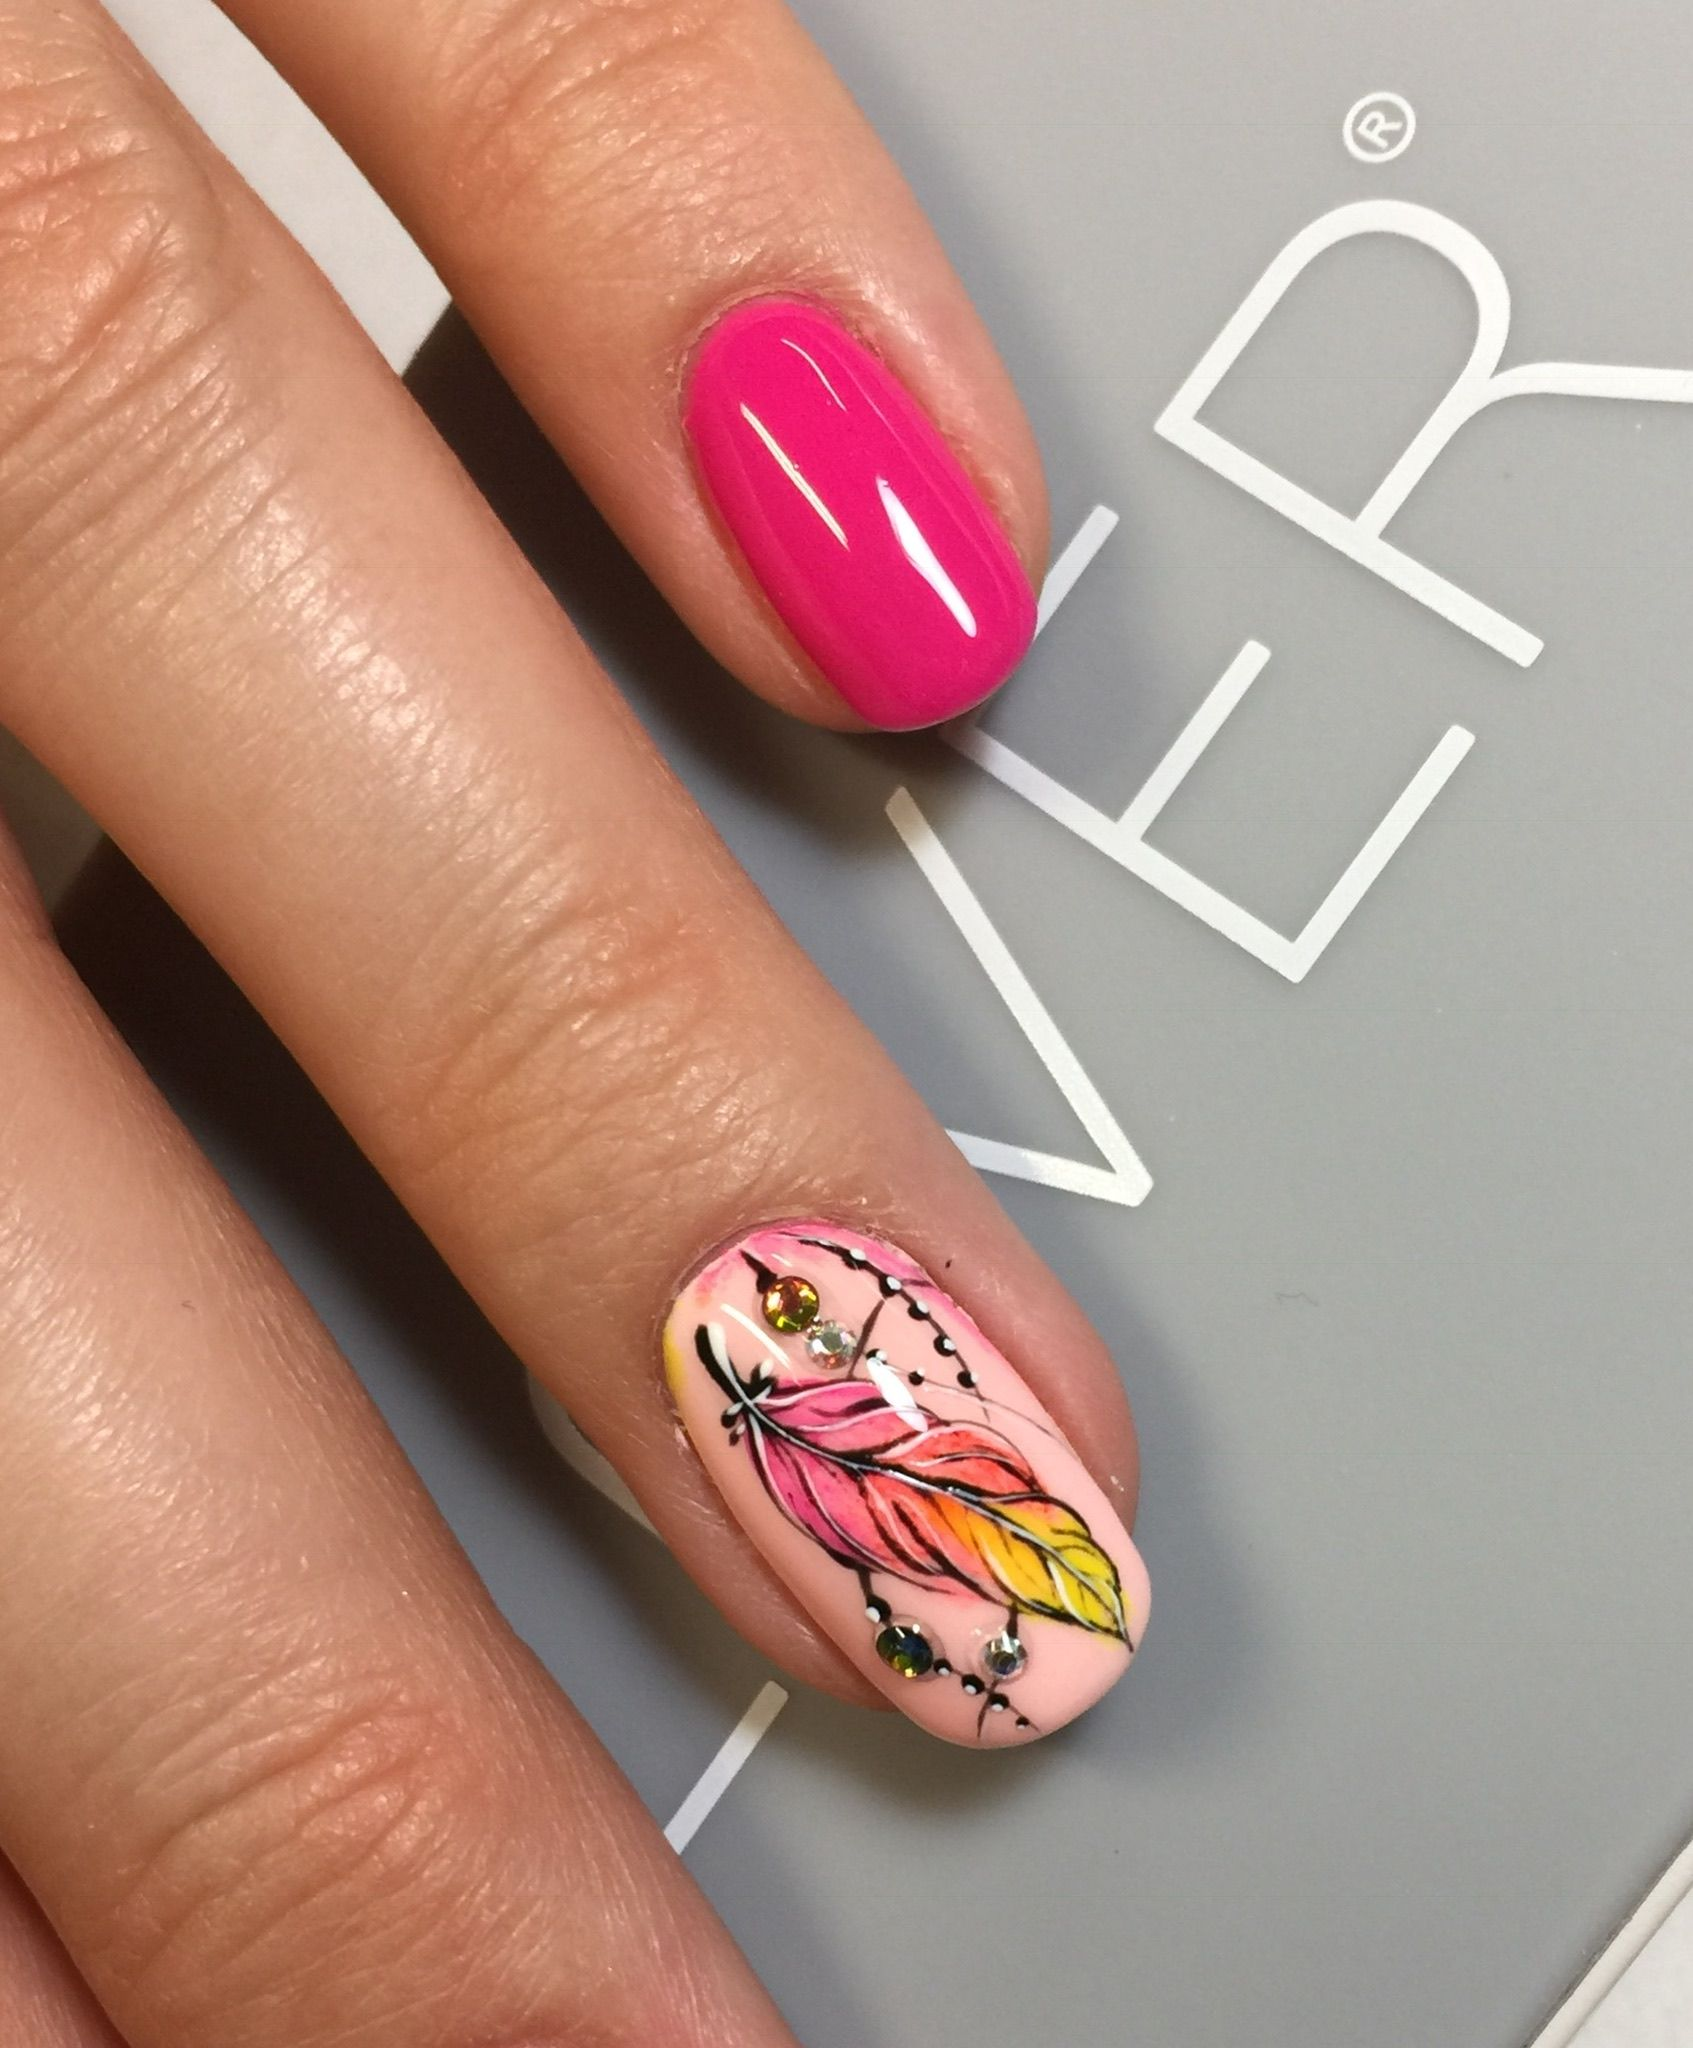 Pin by Юлия on идеи маникюра | Pinterest | Winter nail art, Flower ...